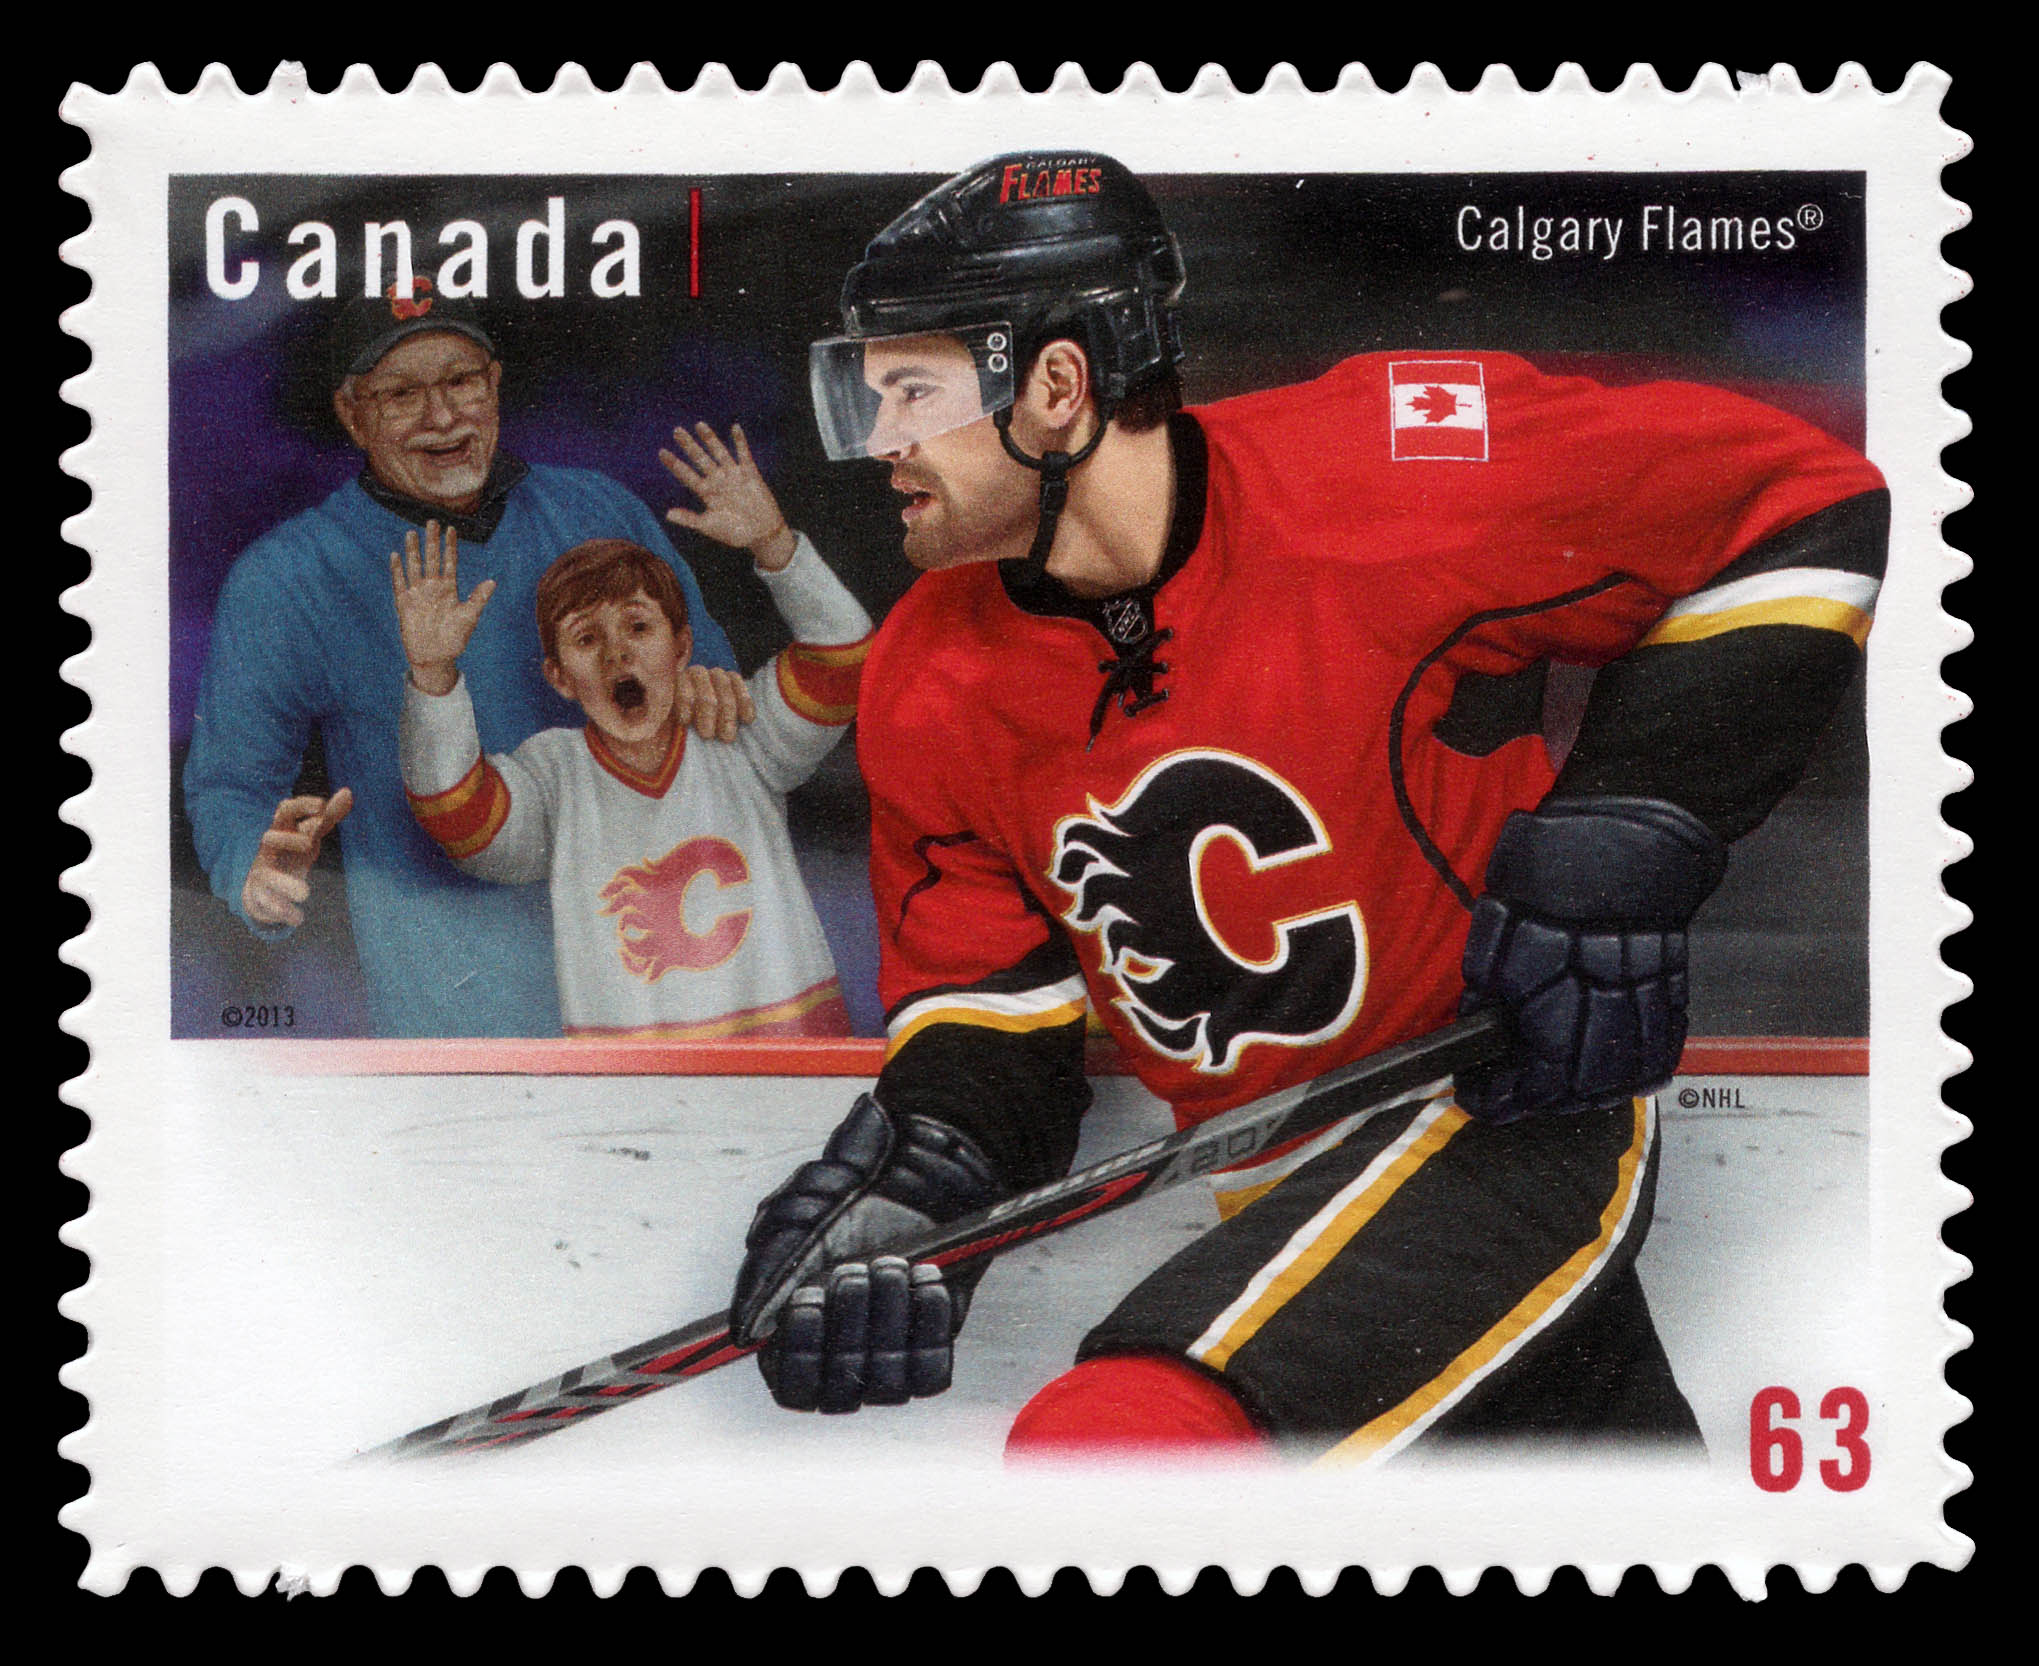 Calgary Flames Canada Postage Stamp | NHL® Team Jerseys